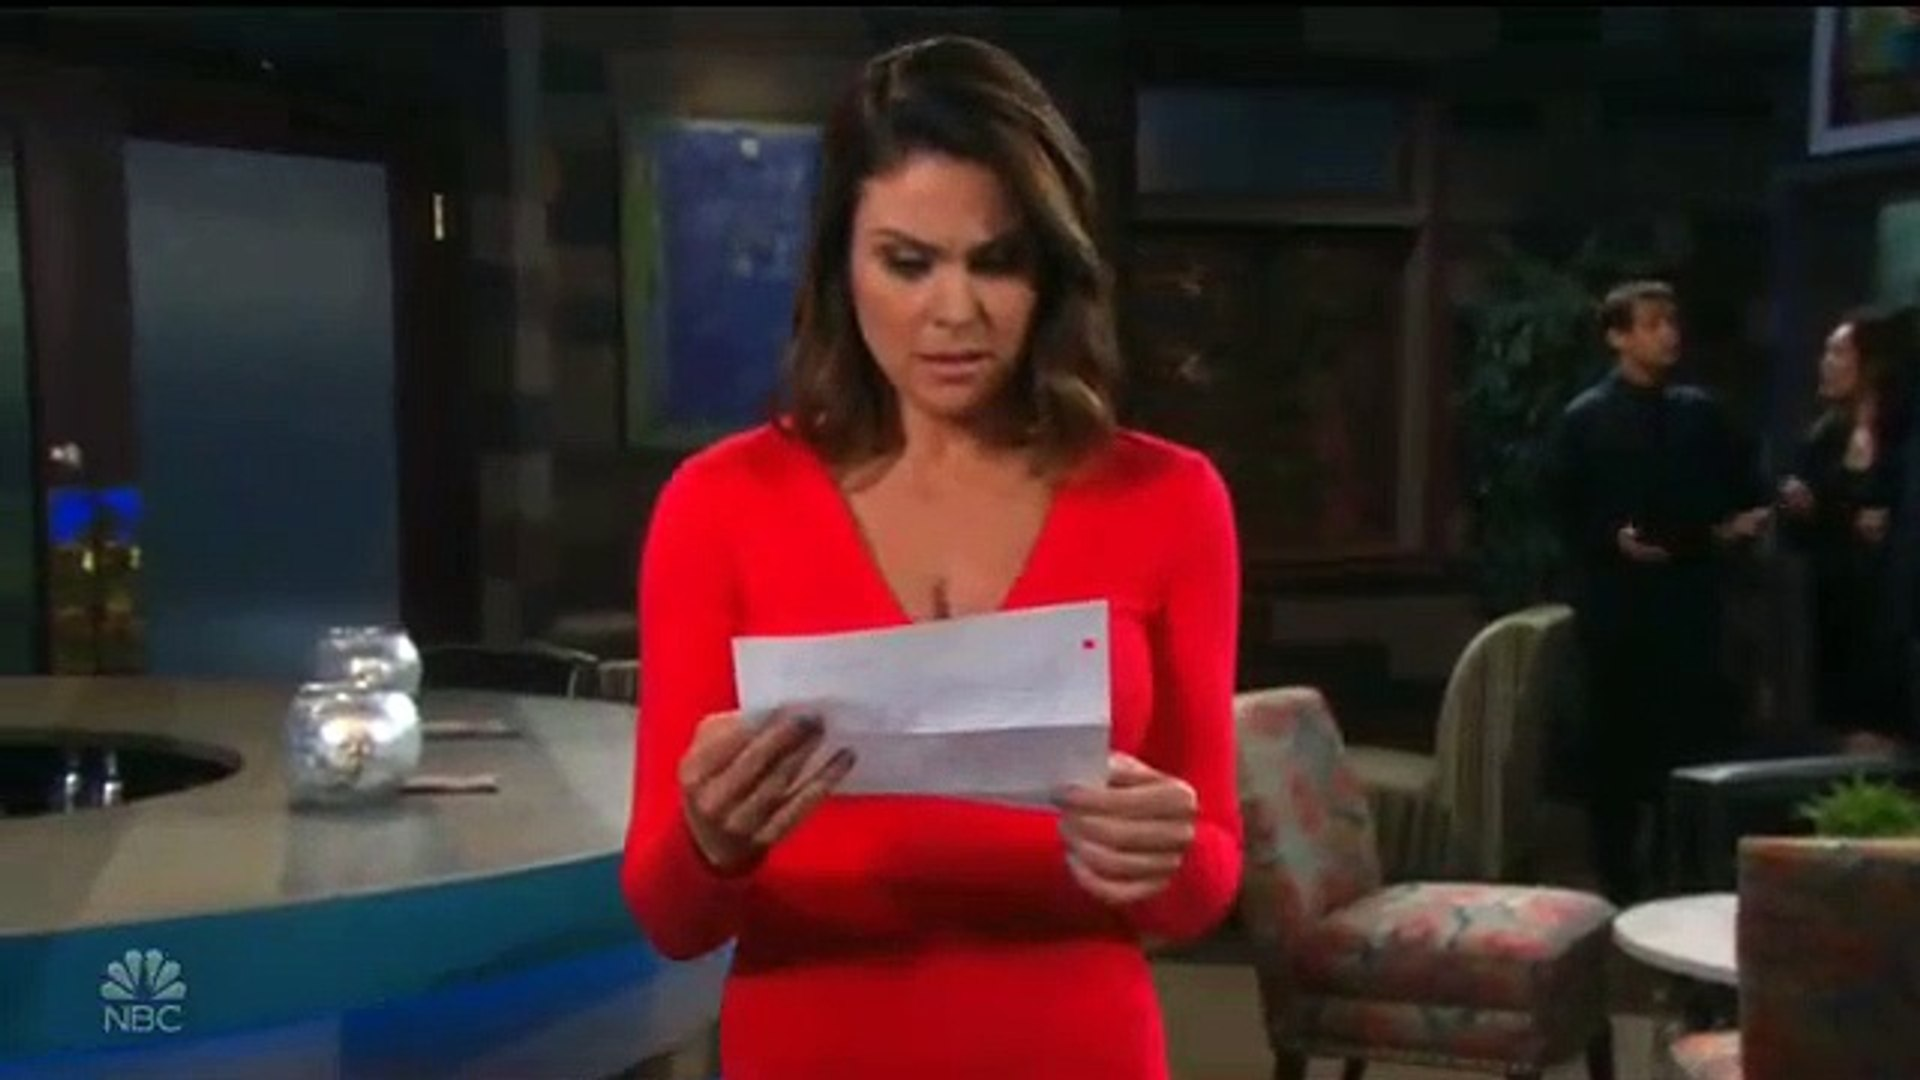 Days of our Lives 12-14-18 (14th December 2018) 12-14-2018 DOOL 14 December 2018